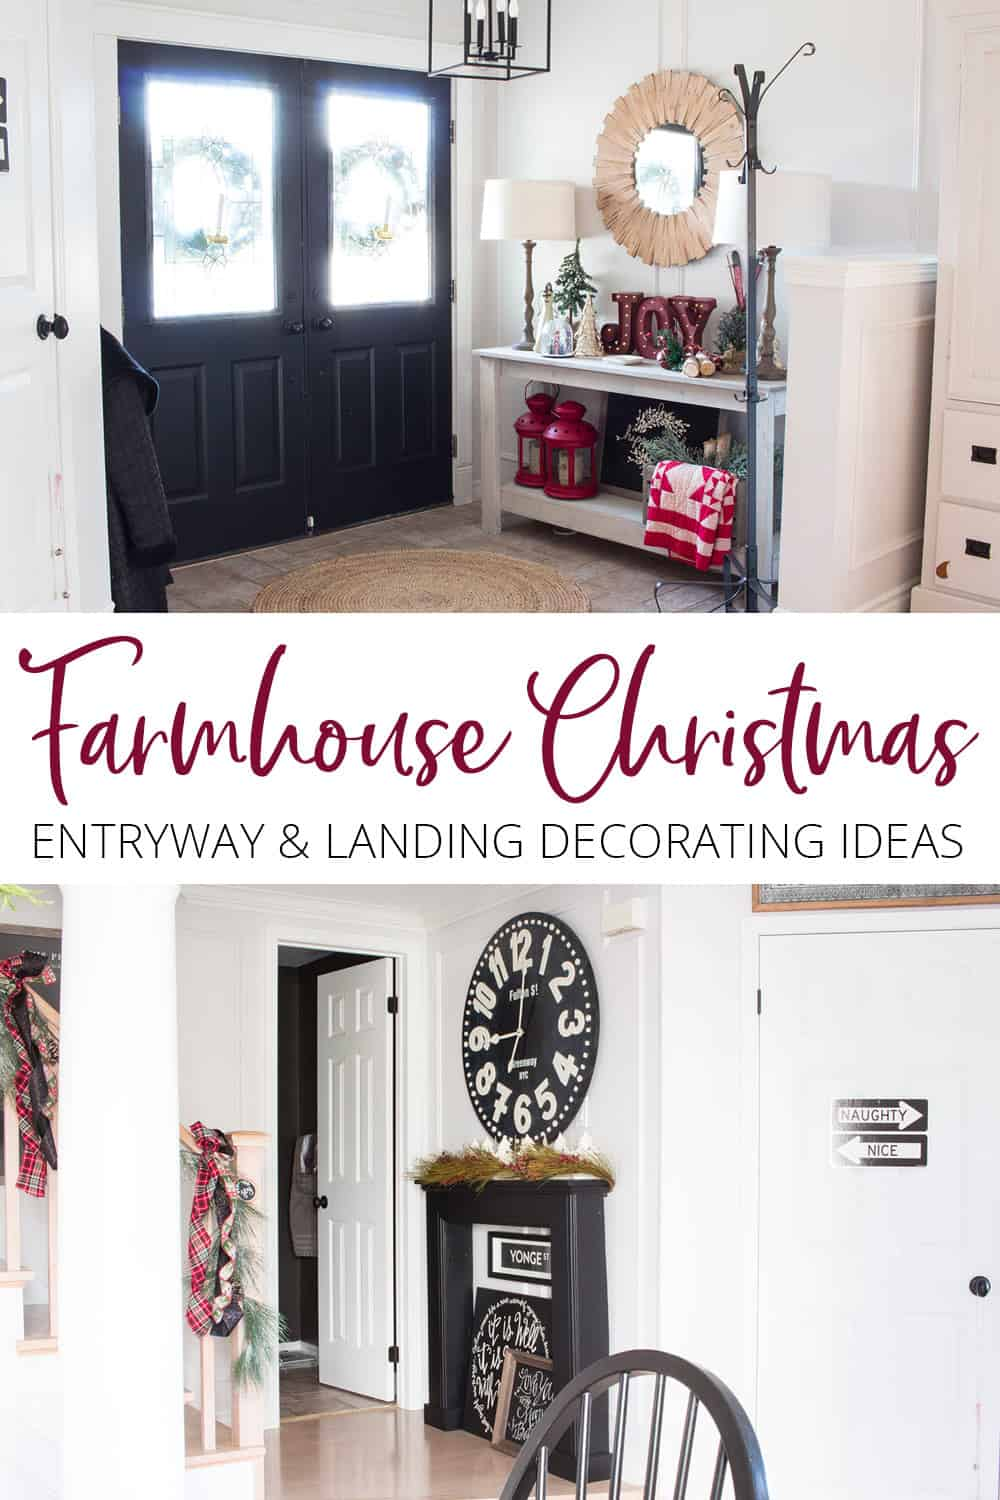 Farmhouse Christmas entry and landing decorating ideas.